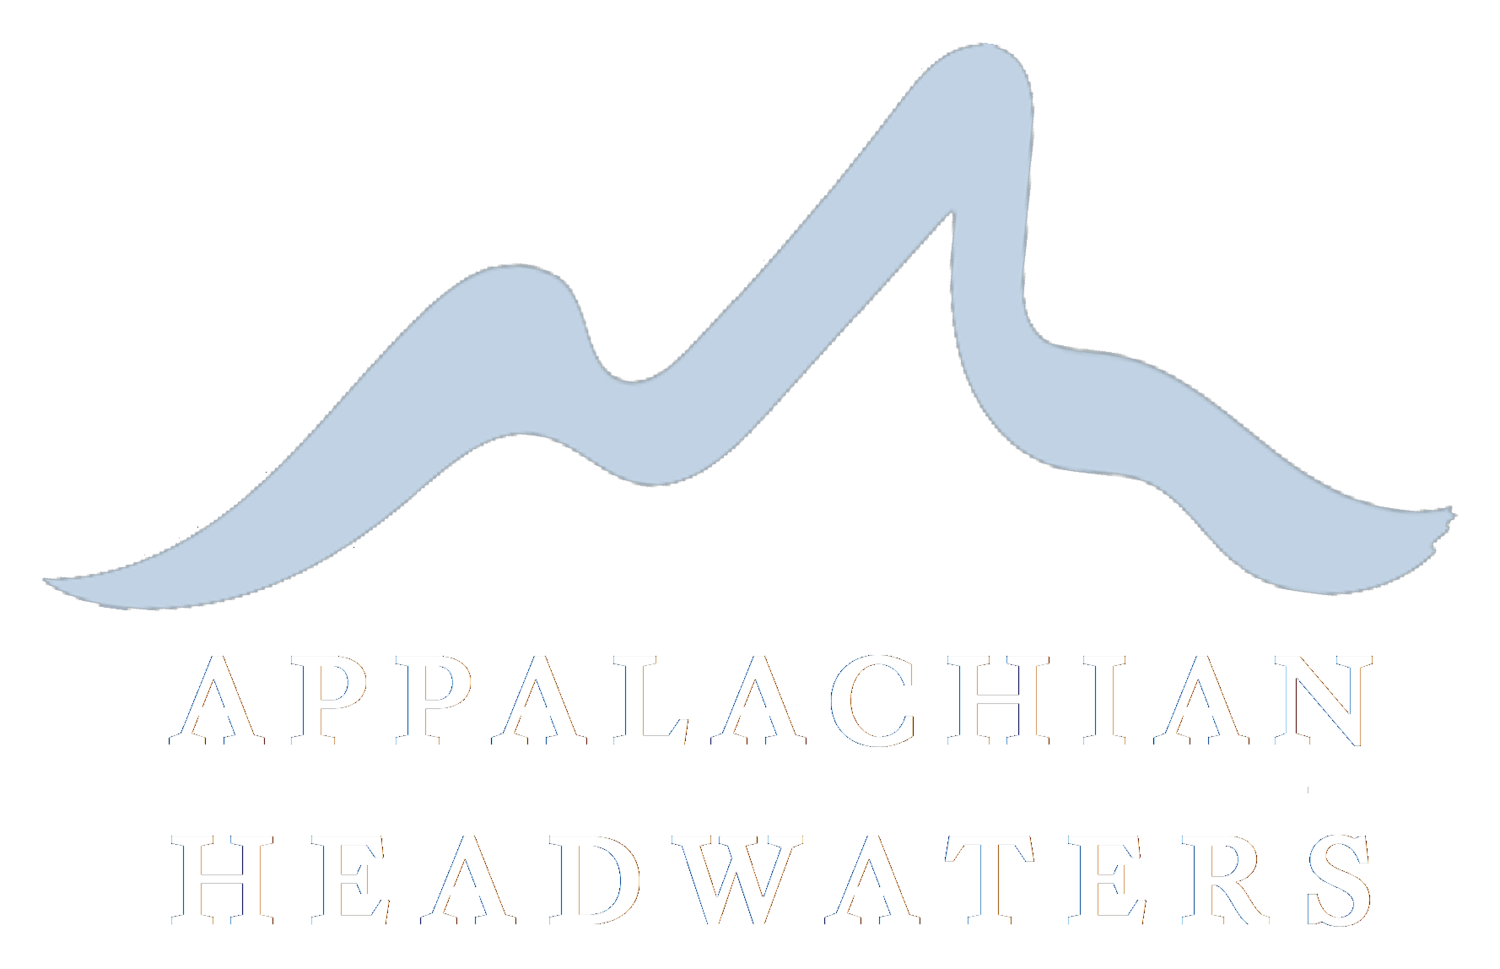 Appalachian Headwaters